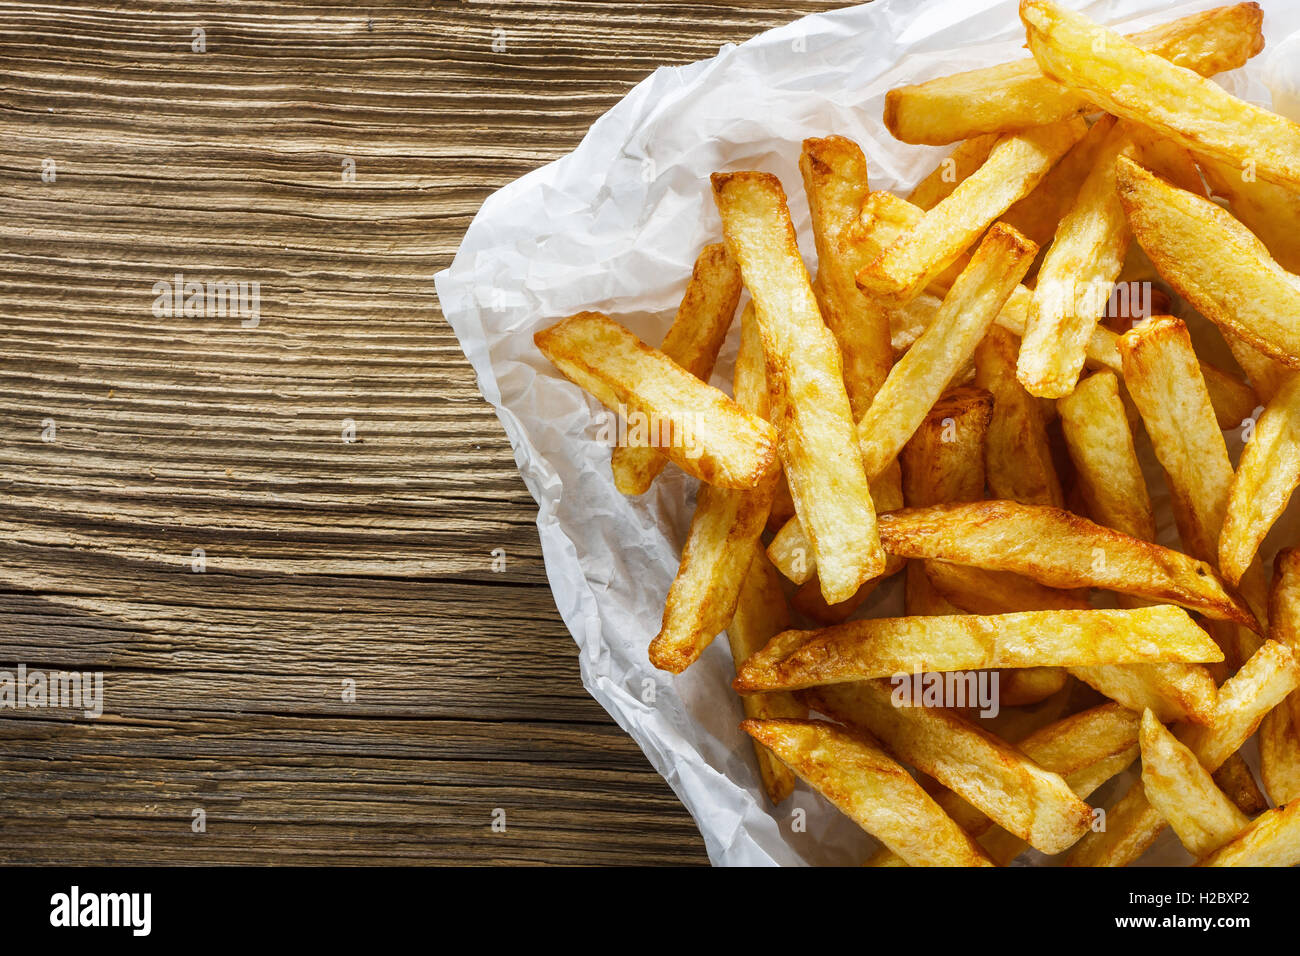 French Fries on wooden table Photo Stock